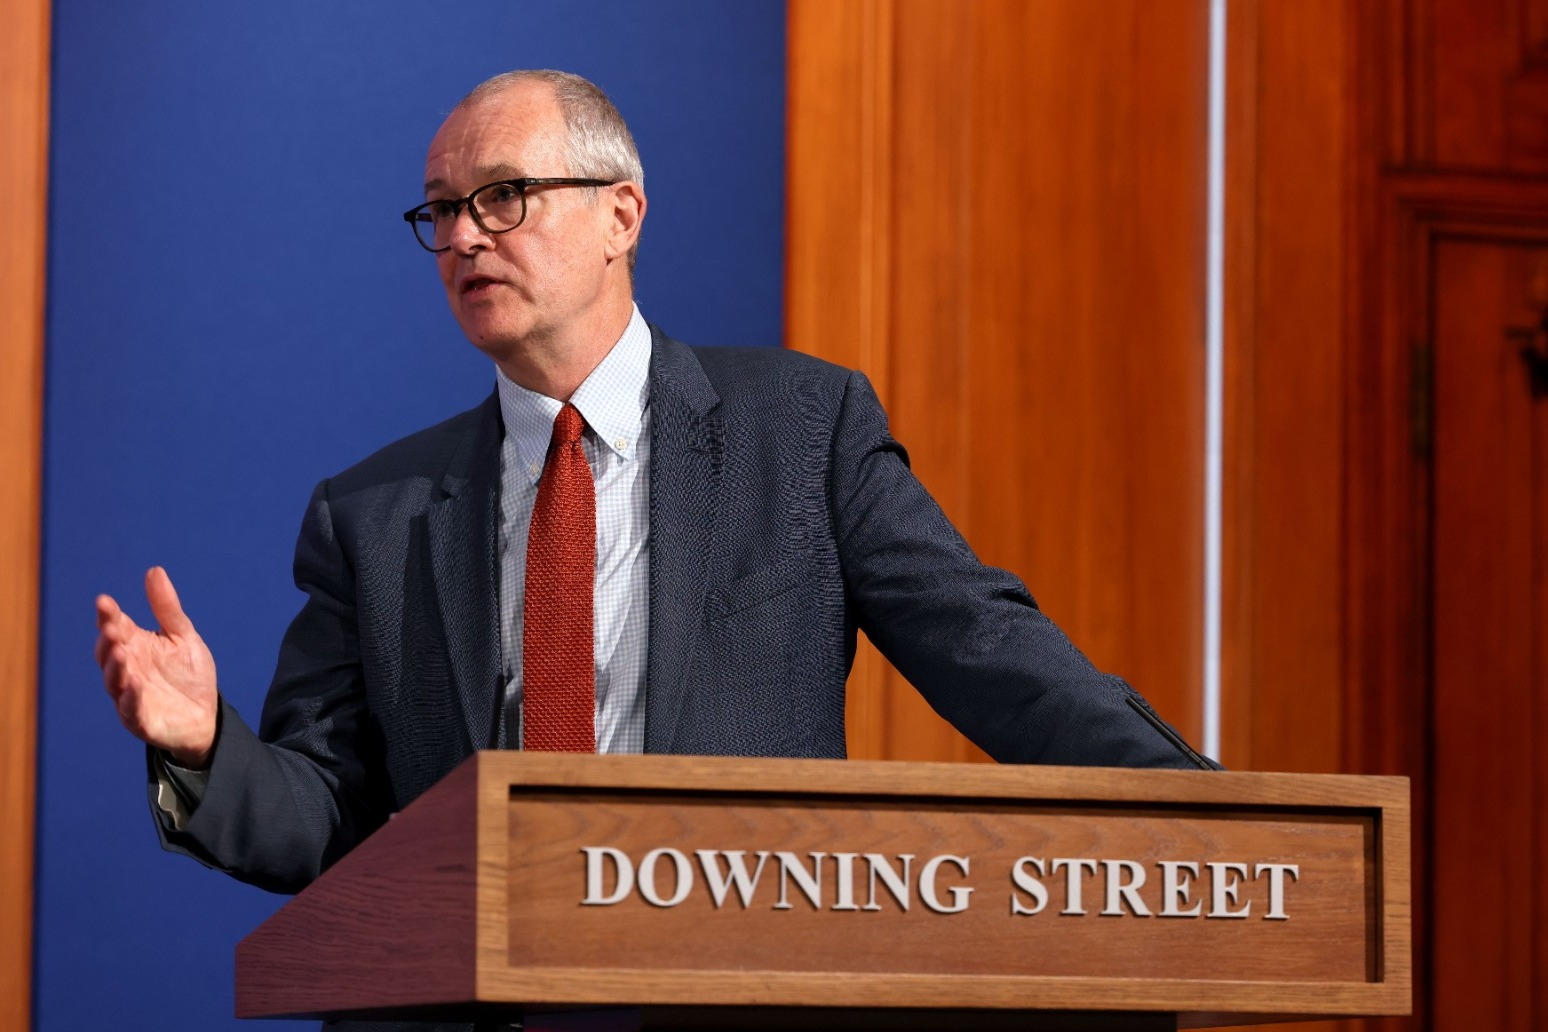 PM hands Sir Patrick Vallance new roles under 'science superpower' ambitions